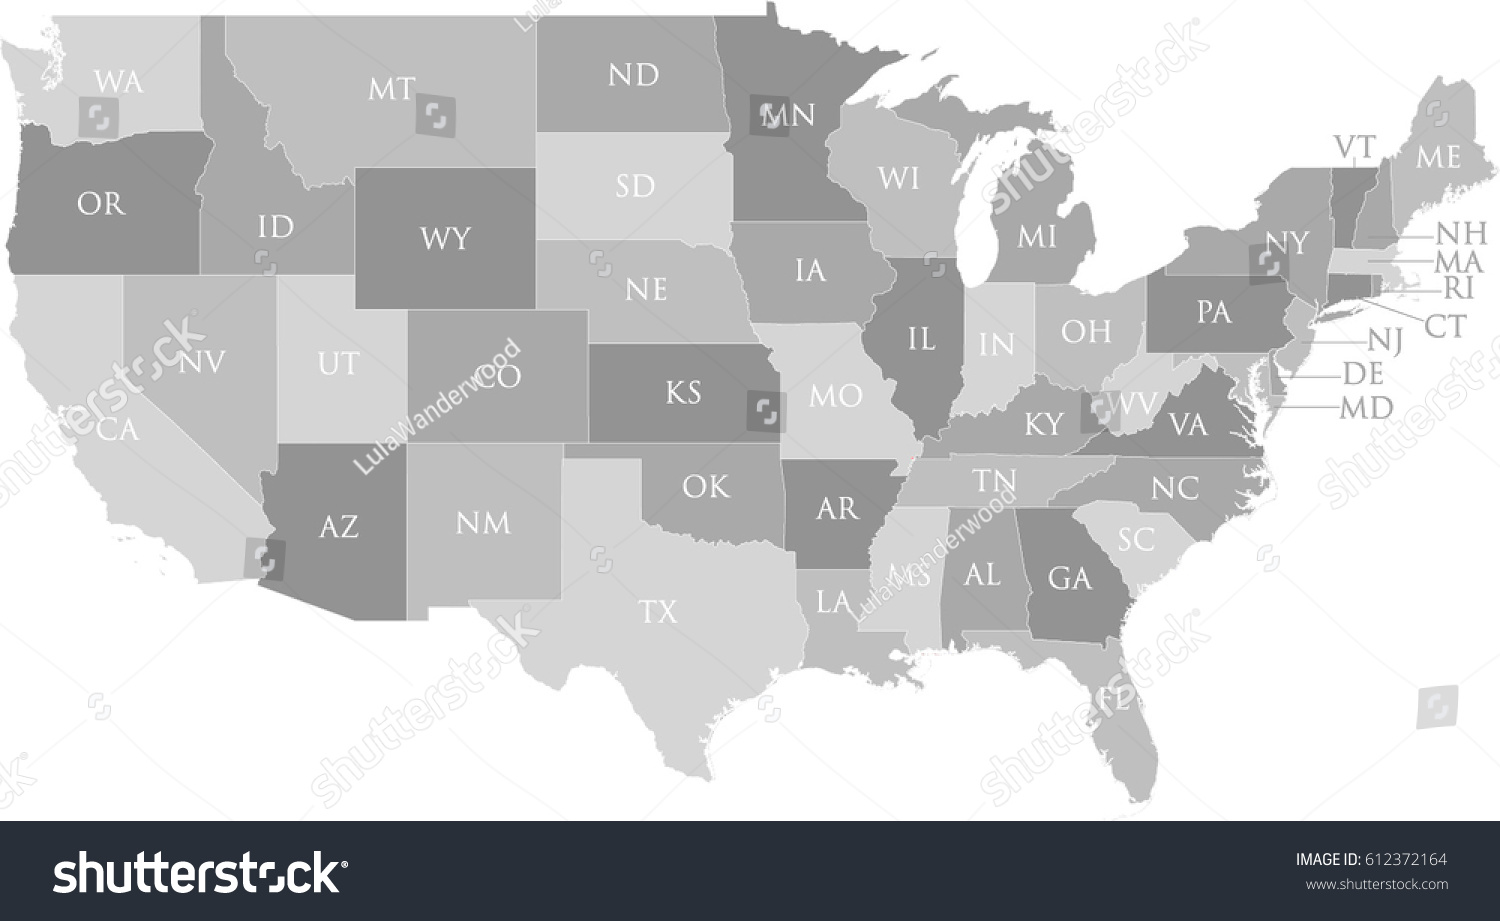 Us Map State Name Postal Abbreviation Stock Vector - Map of the postal abreviations for the us